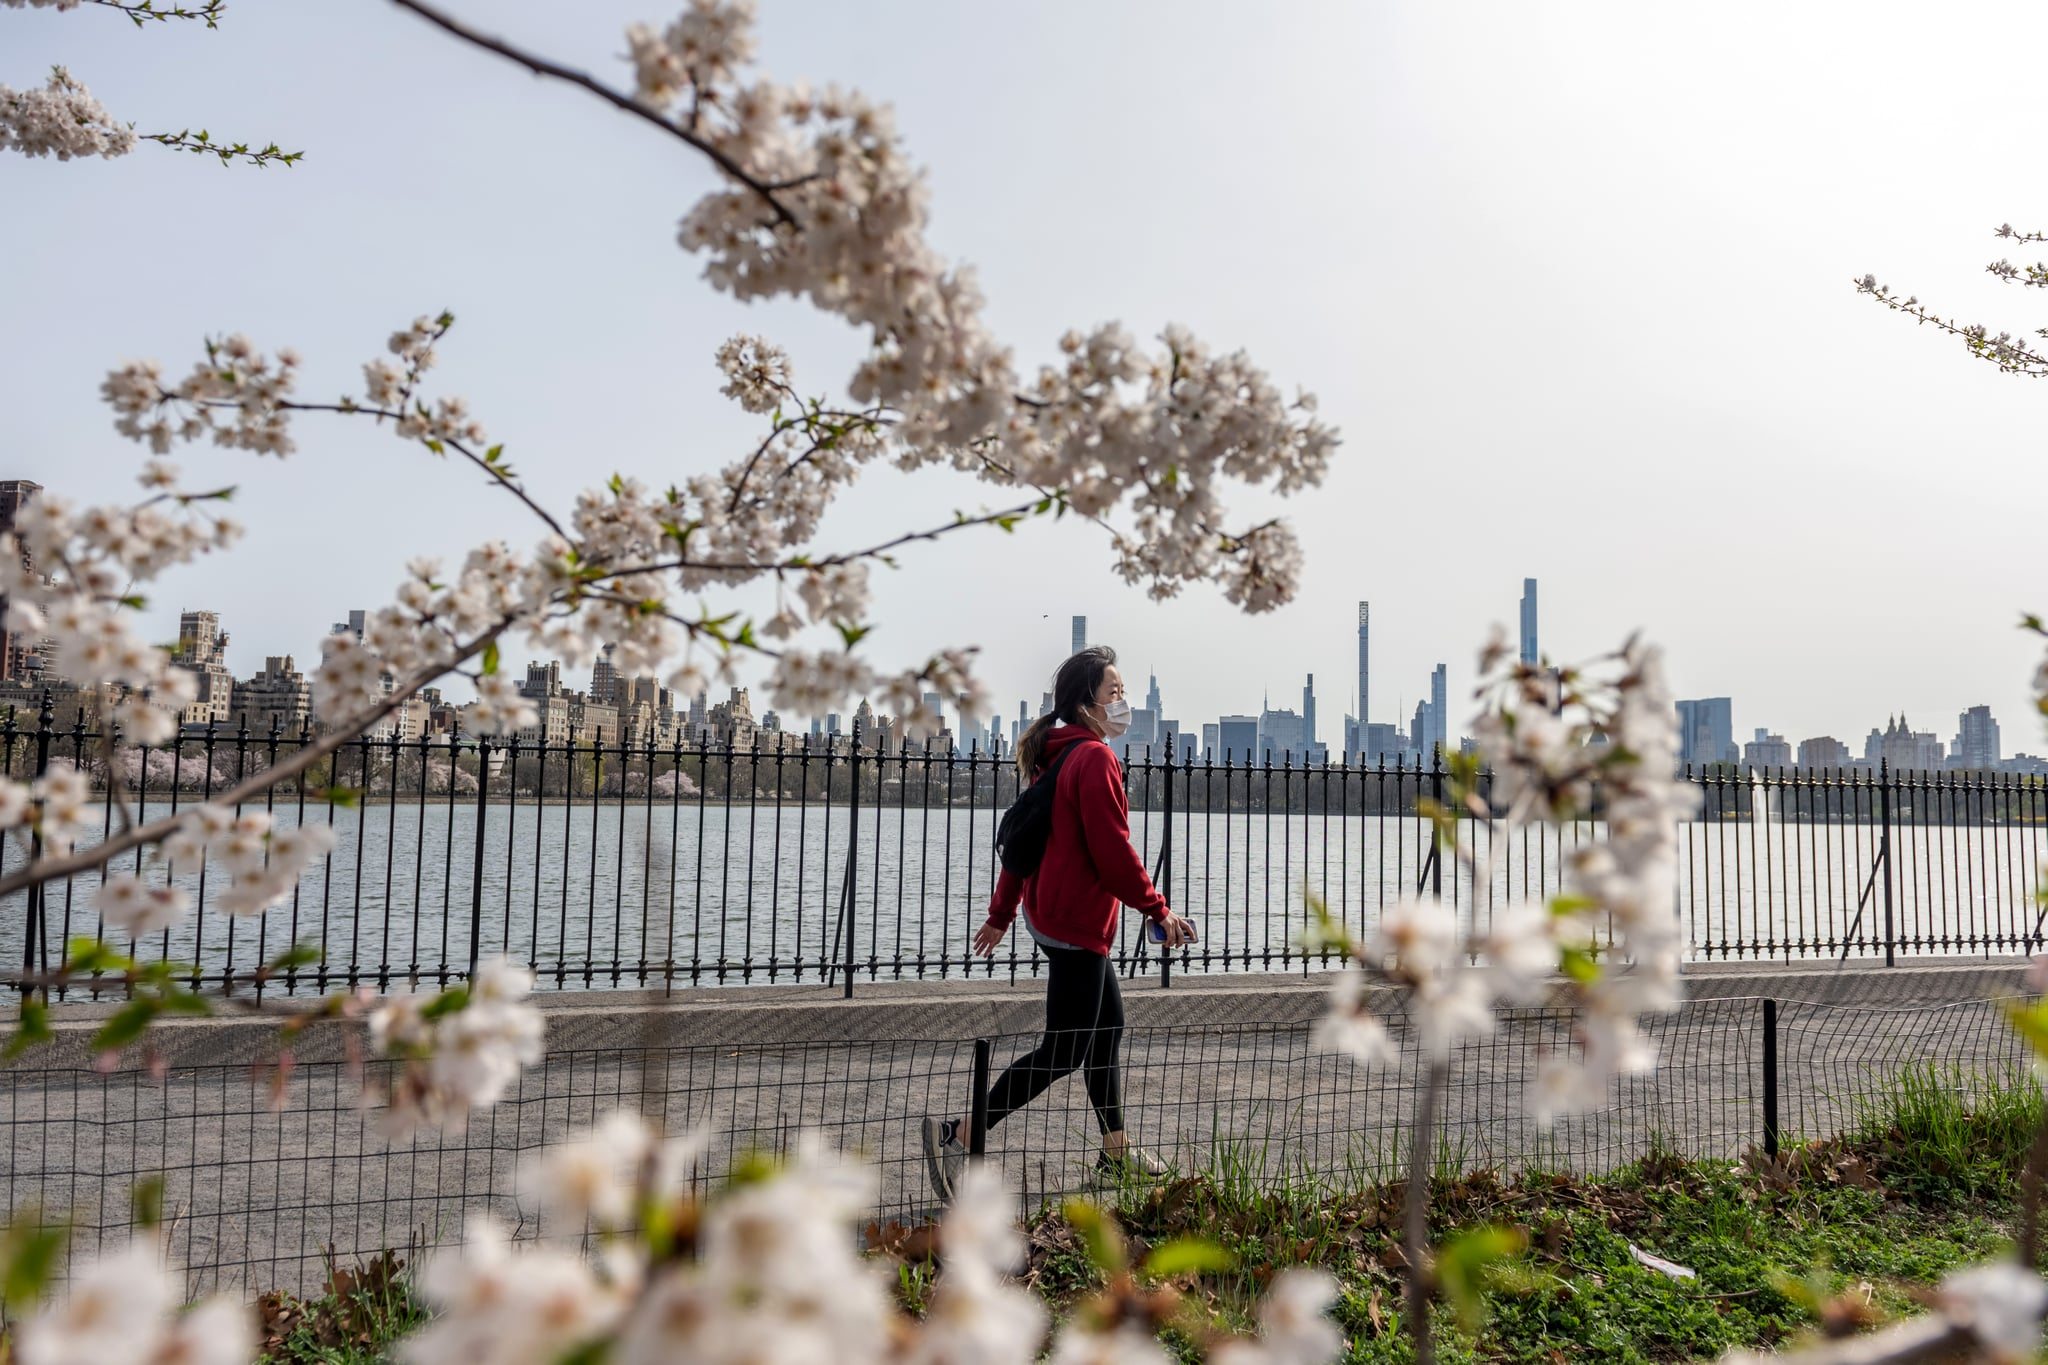 NEW YORK, NEW YORK - APRIL 10: A woman wearing a mask walks along the Jacqueline Kennedy Onassis Reservoir framed by Japanese Cherry Blossom trees in Central Park amid the coronavirus pandemic  on April 10, 2021 in New York City. After undergoing various shutdown orders for the past 12 months the city is currently in phase 4 of its reopening plan, allowing for the reopening of low-risk outdoor activities, movie and television productions, indoor dining as well as the opening of movie theaters, all with capacity restrictions. (Photo by Alexi Rosenfeld/Getty Images)